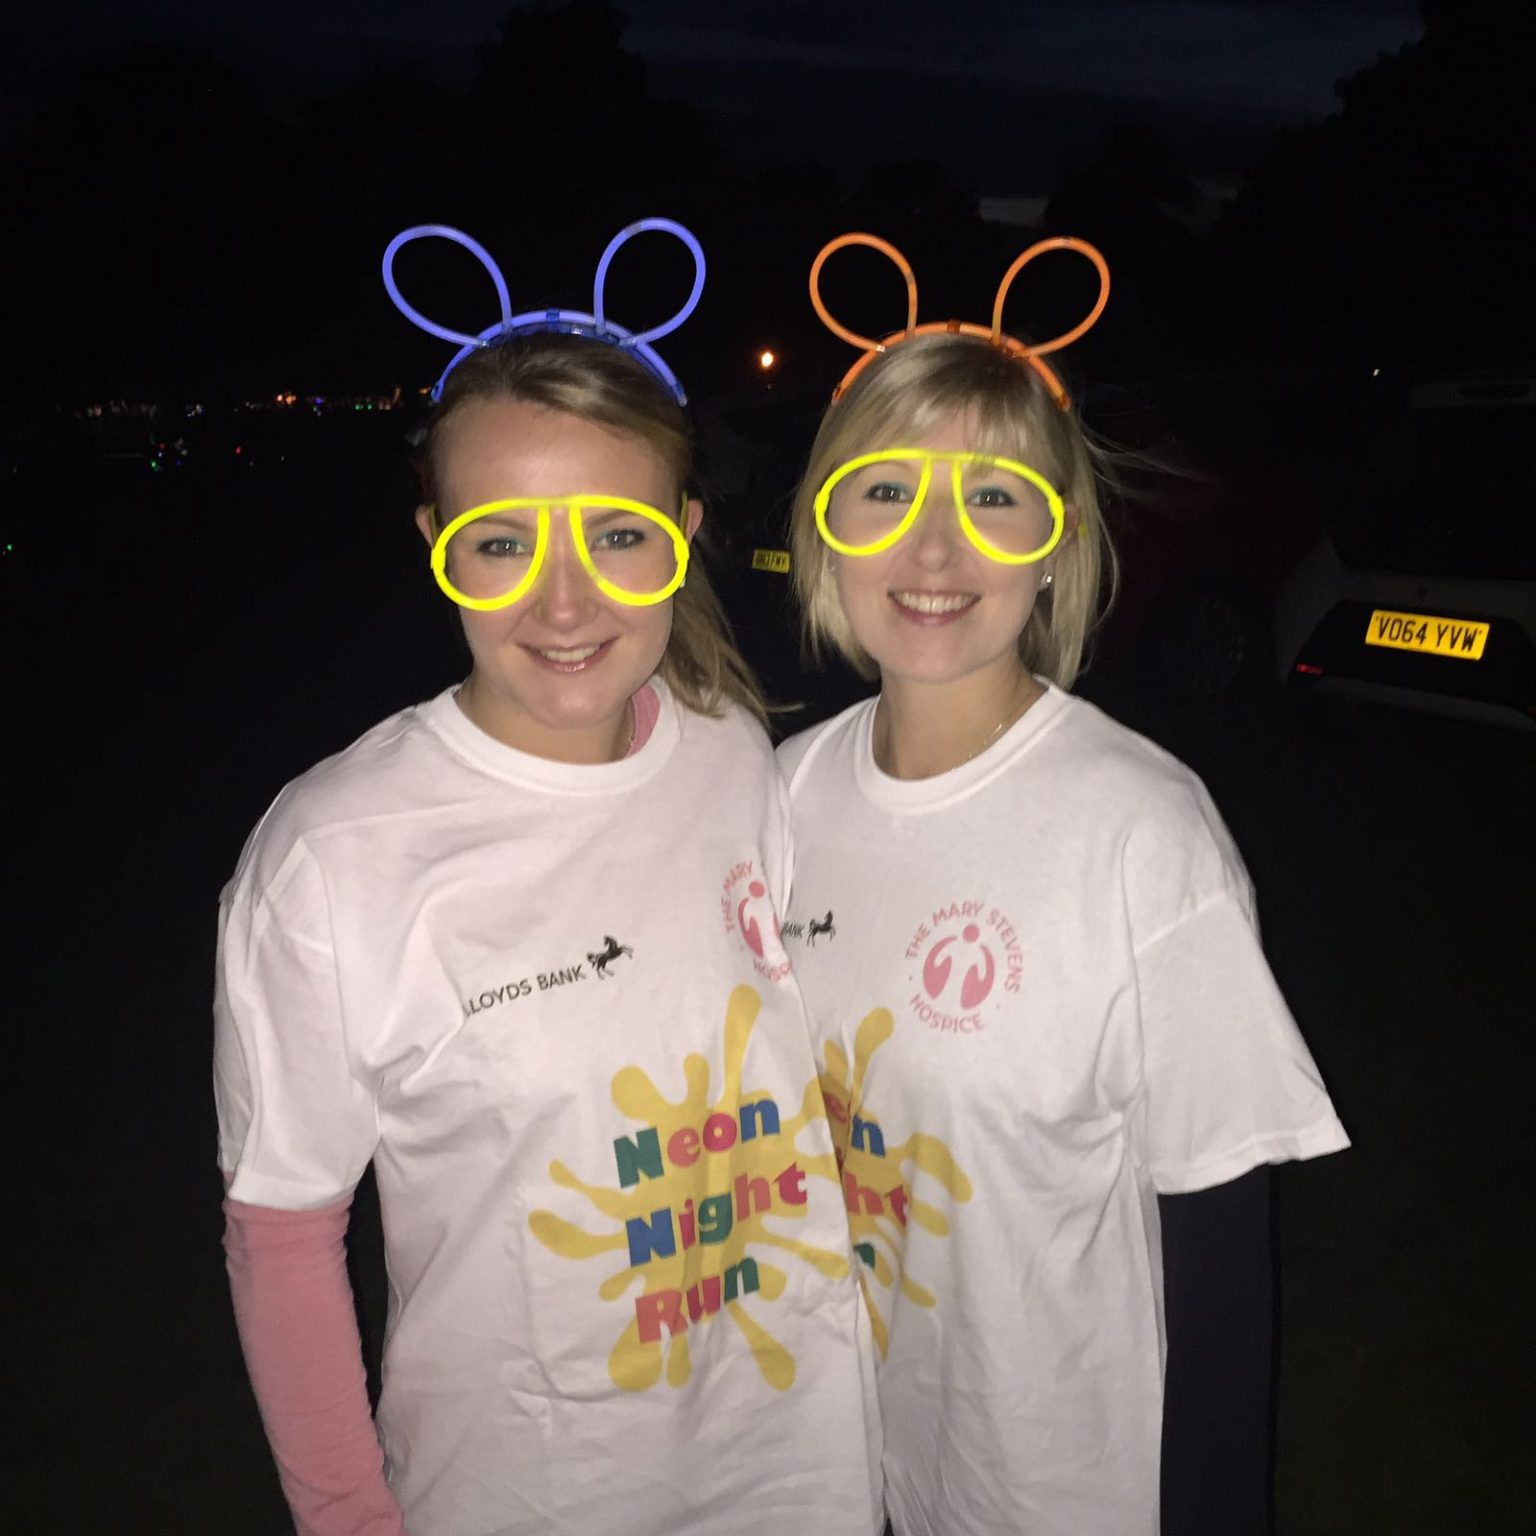 Race offers some light relief for hospice